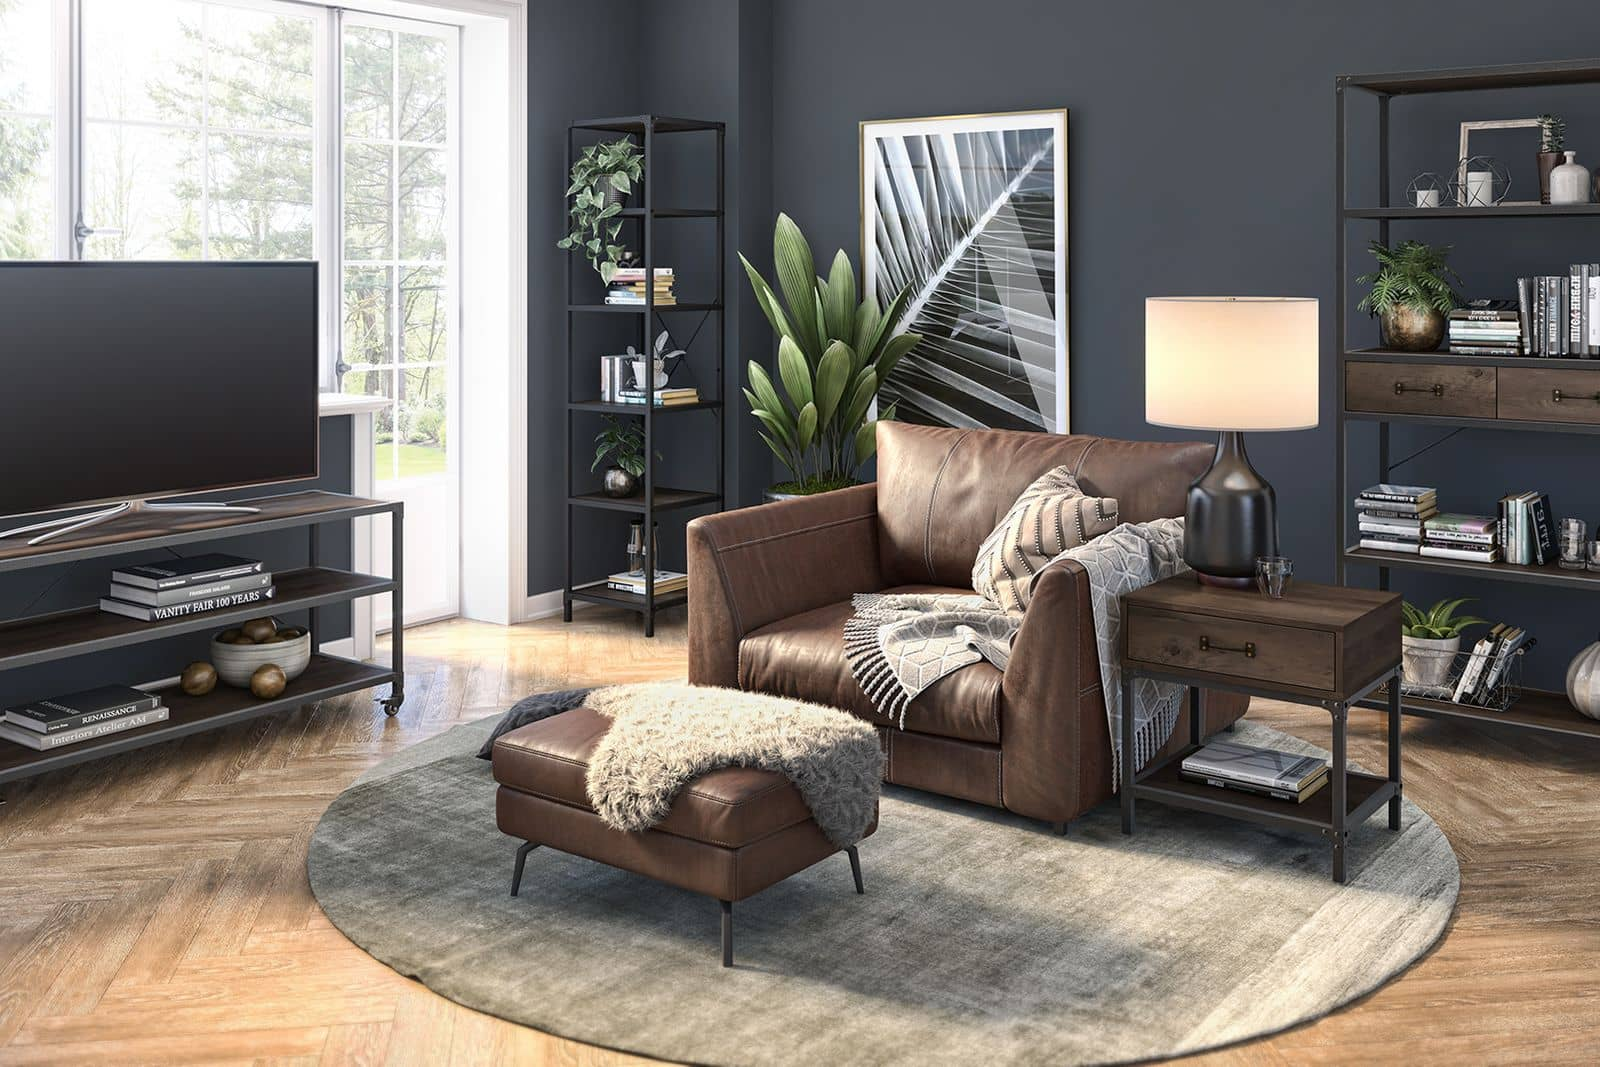 Cozy living room with Bestar furniture